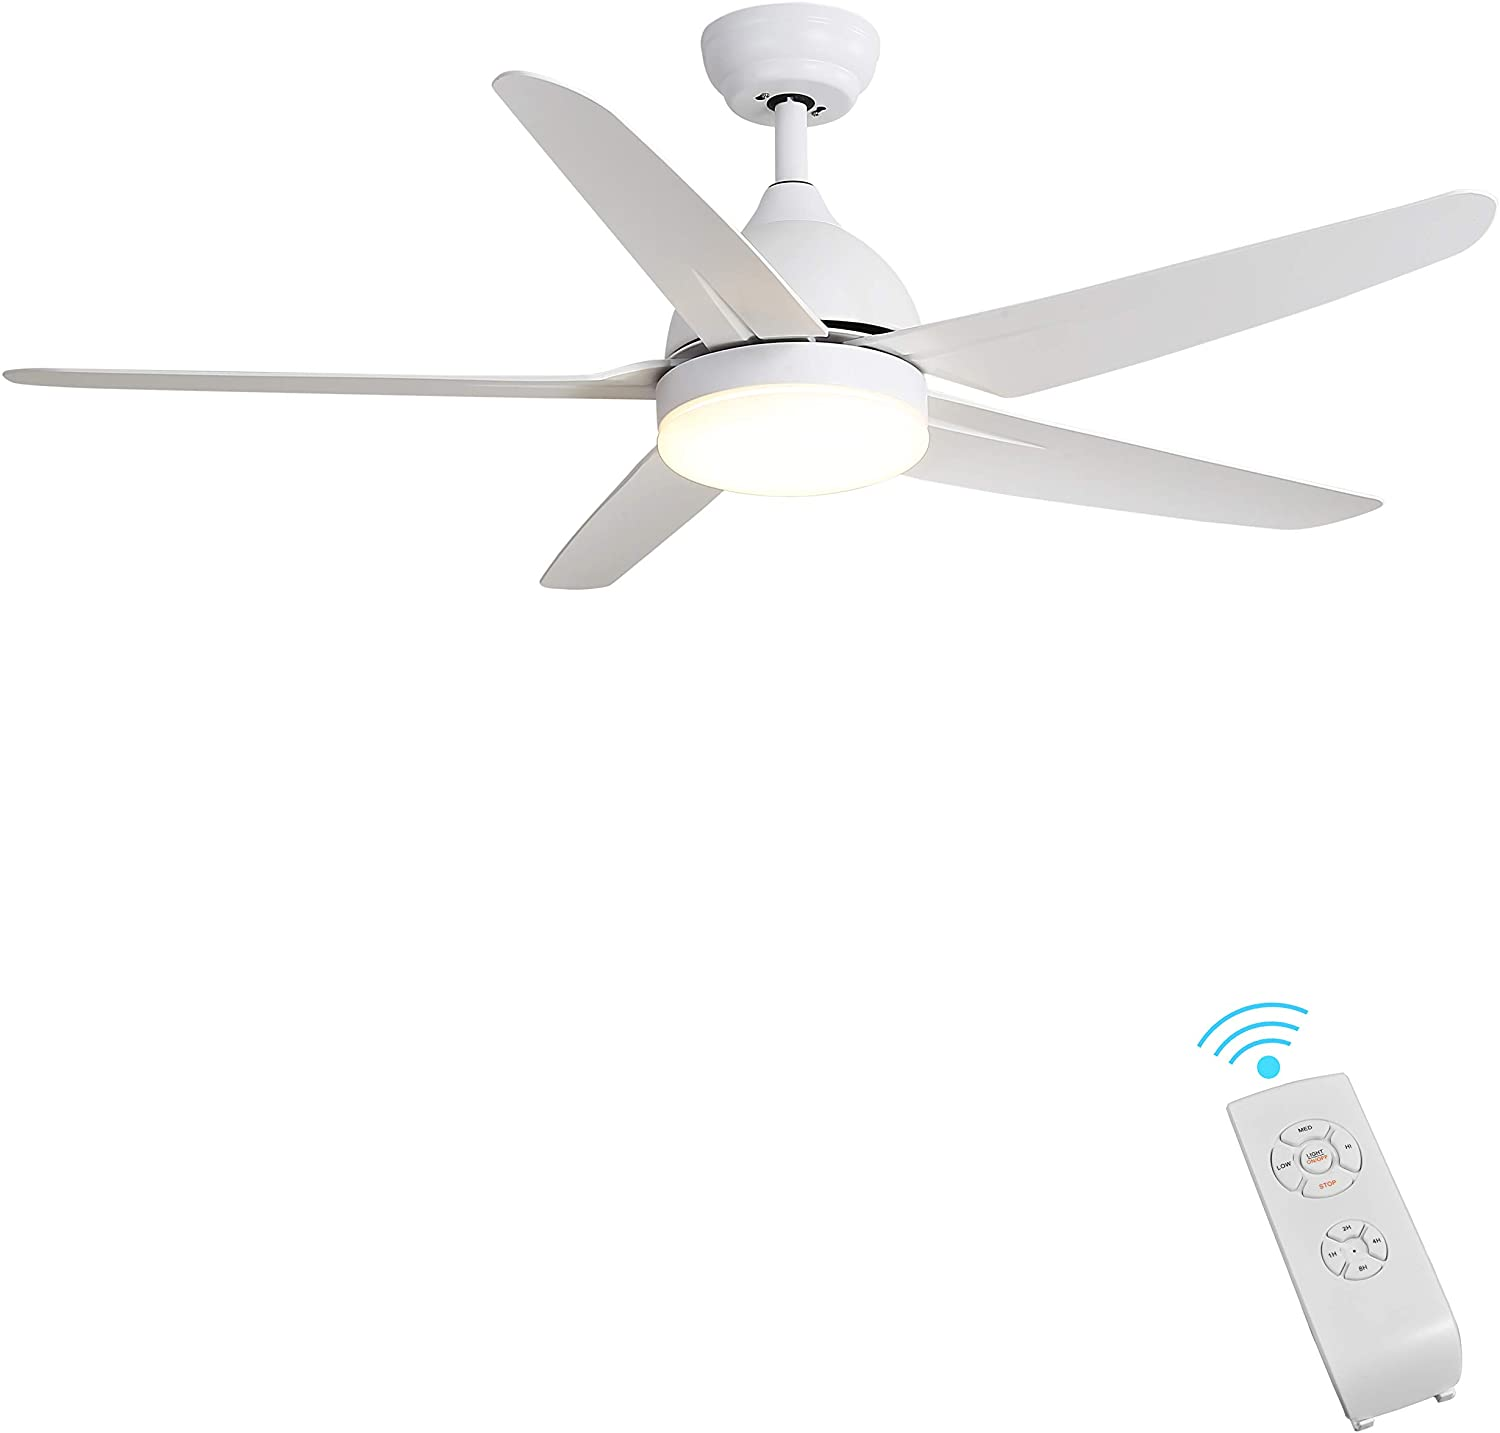 Amazon Com Indoor Ceiling Fan Light Fixtures Finxin White Remote Led 52 Ceiling Fans For Bedroom Living Room Dining Room Including Motor 5 Blades Remote Switch 5 Blades Kitchen Dining,Barbra Streisand Home